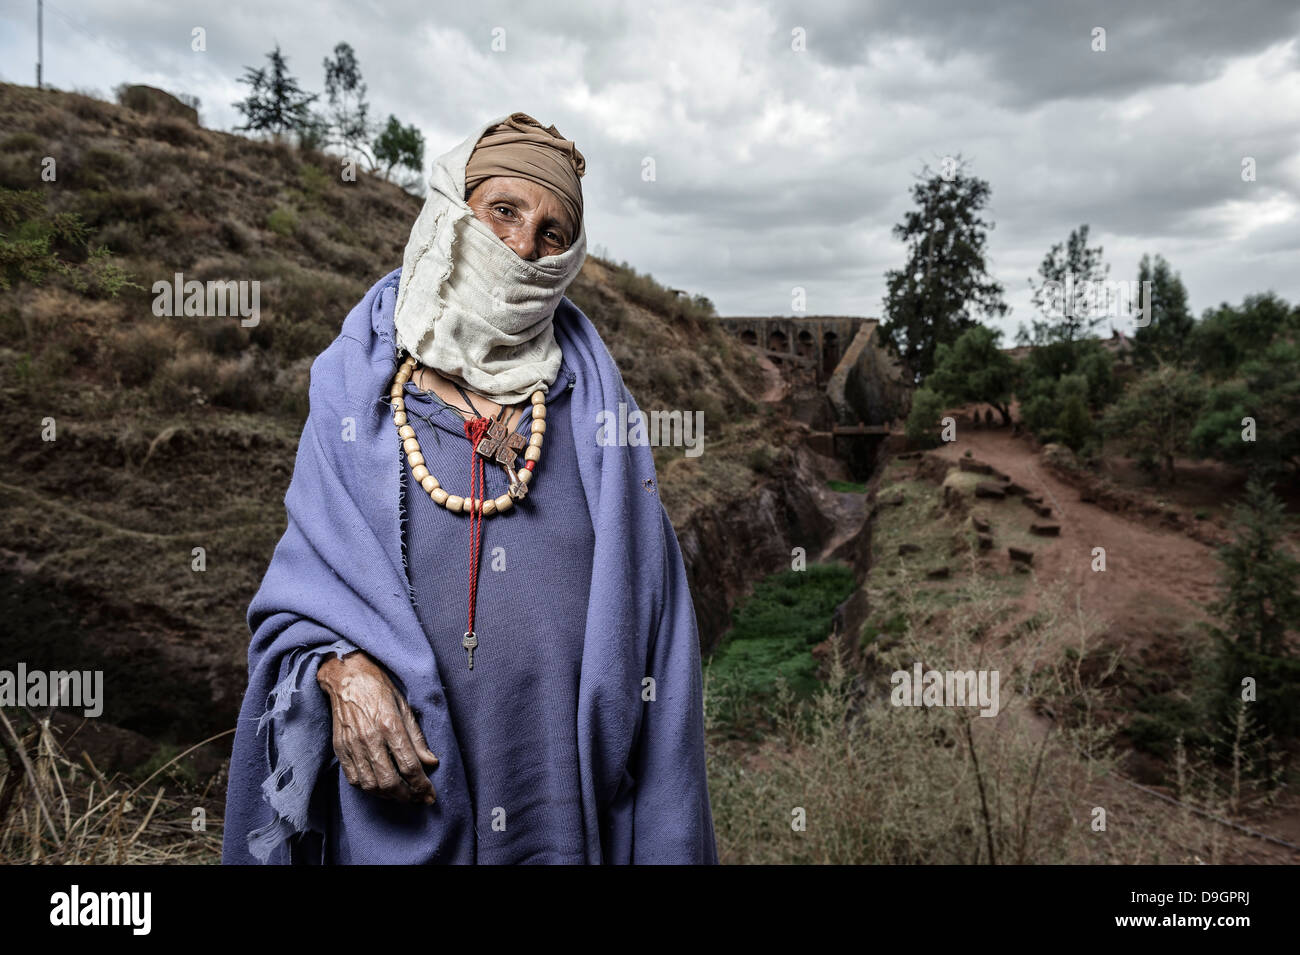 Portrait of a Christian Orthodox nun in the old city of Lalibela, Ethiopia - Stock Image